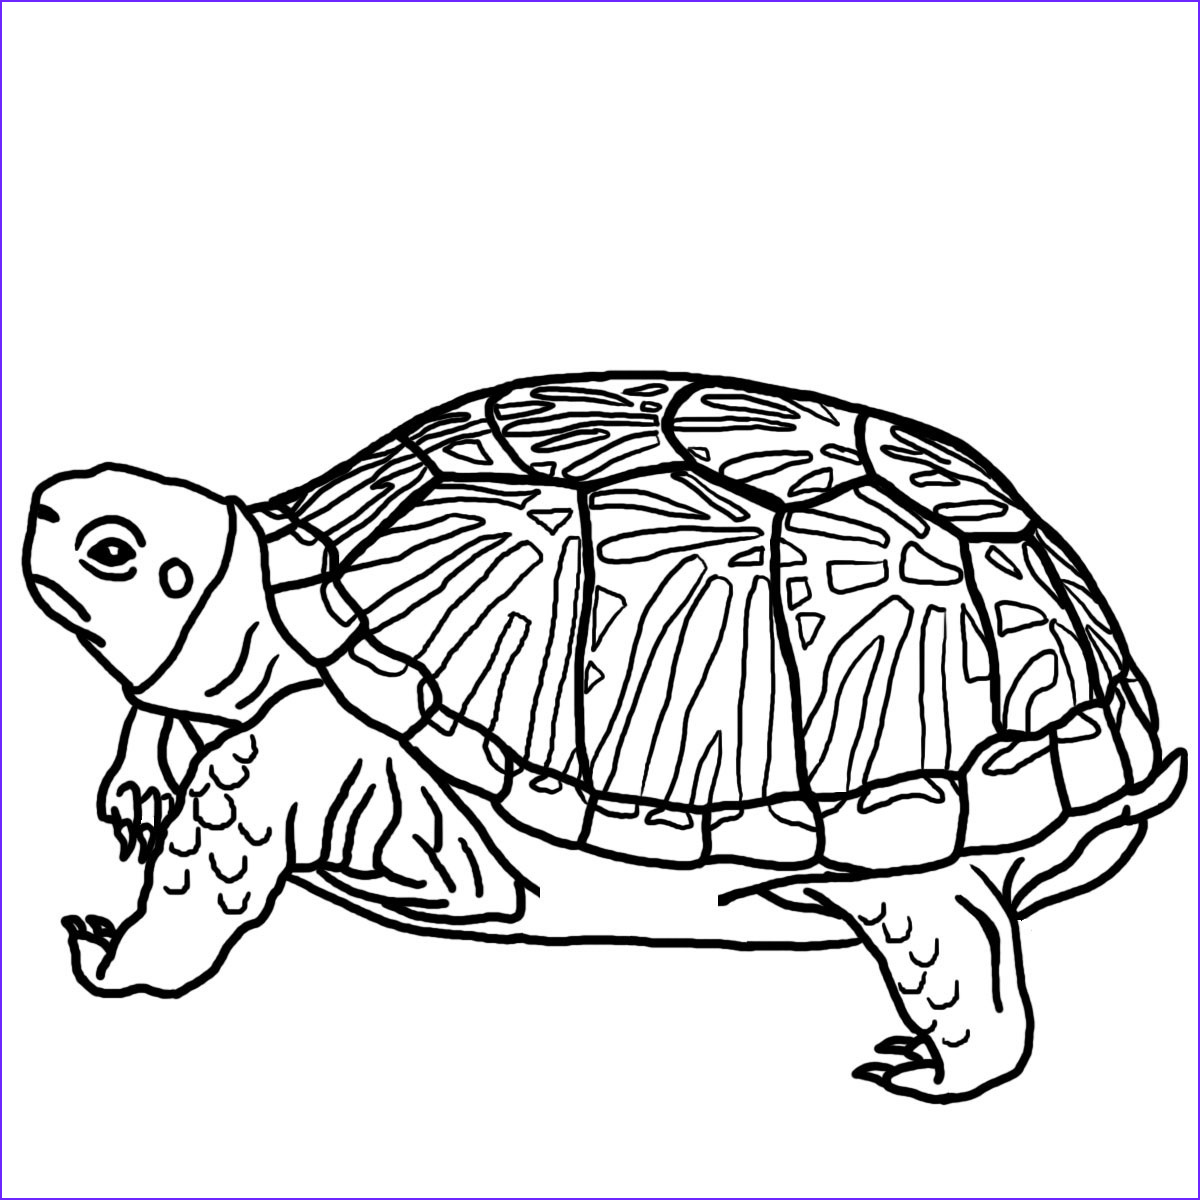 Coloring Page Turtle Cool Photos Free Printable Turtle Coloring Pages for Kids